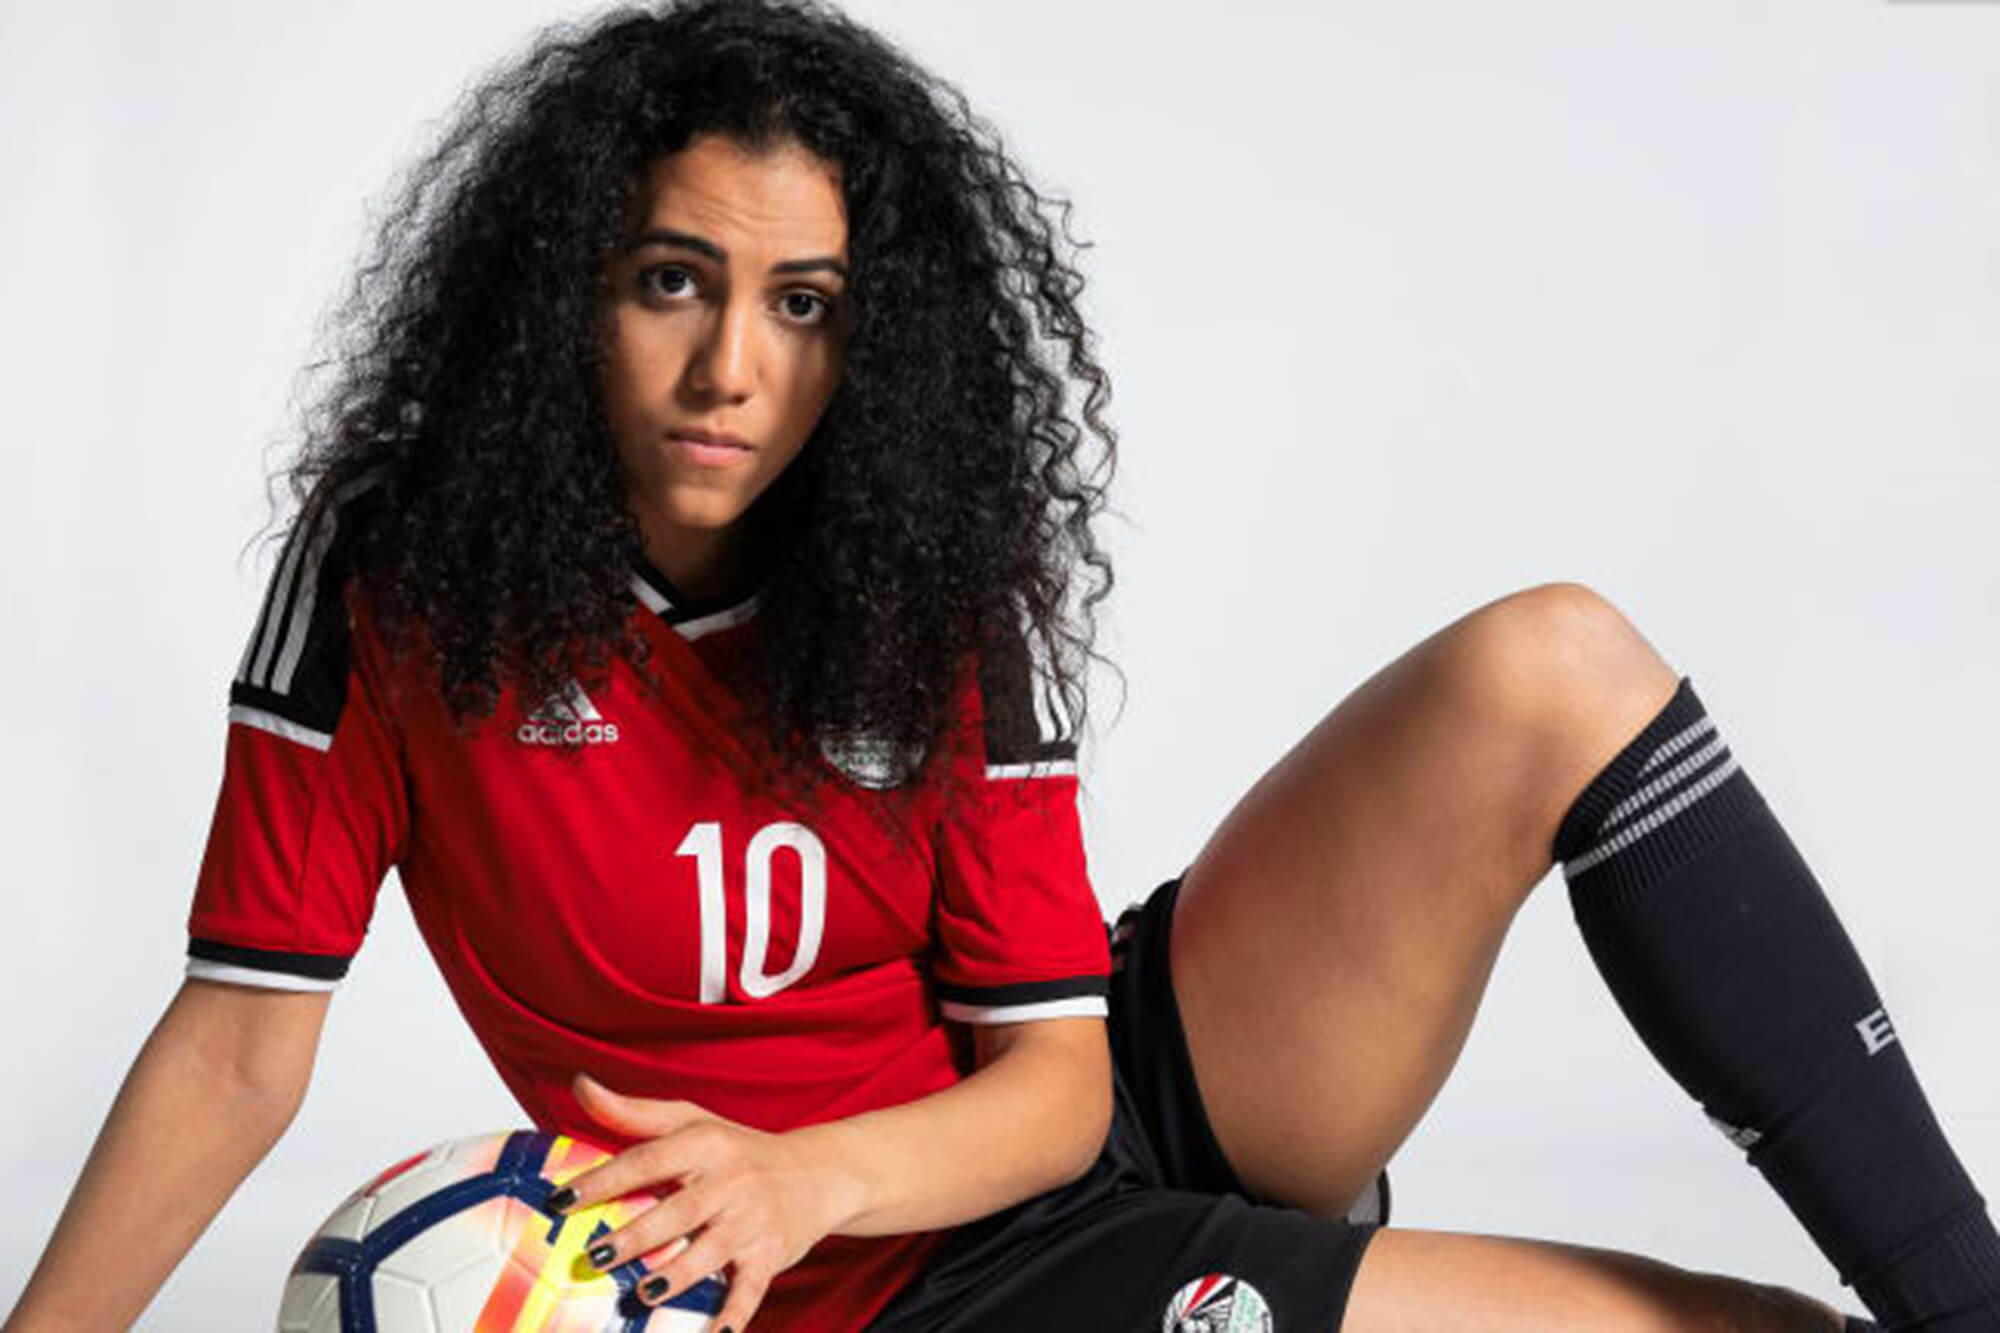 Sarah Essam (Female Egyptian footballer) sat on the floor holding a football looking at the camera